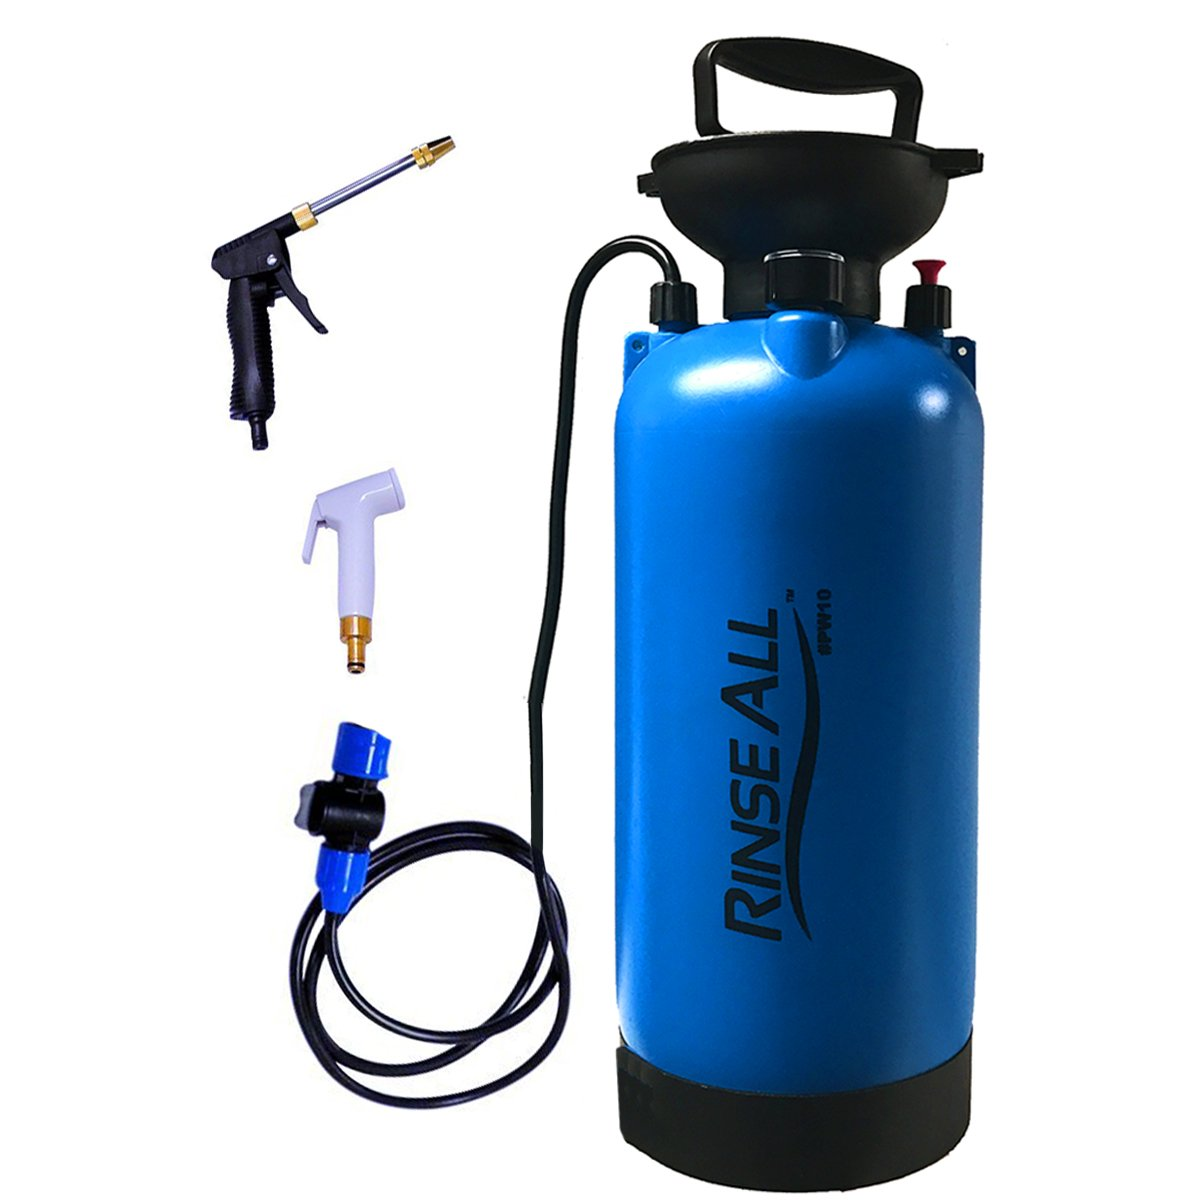 EasyGoProducts Rinse All PW10 2.1 Gallon – Car Washer Kit - Camp Shower - Portable Shower with Heavy Duty Shower Pump Handle, Flexible Hose and Pressure Gauge